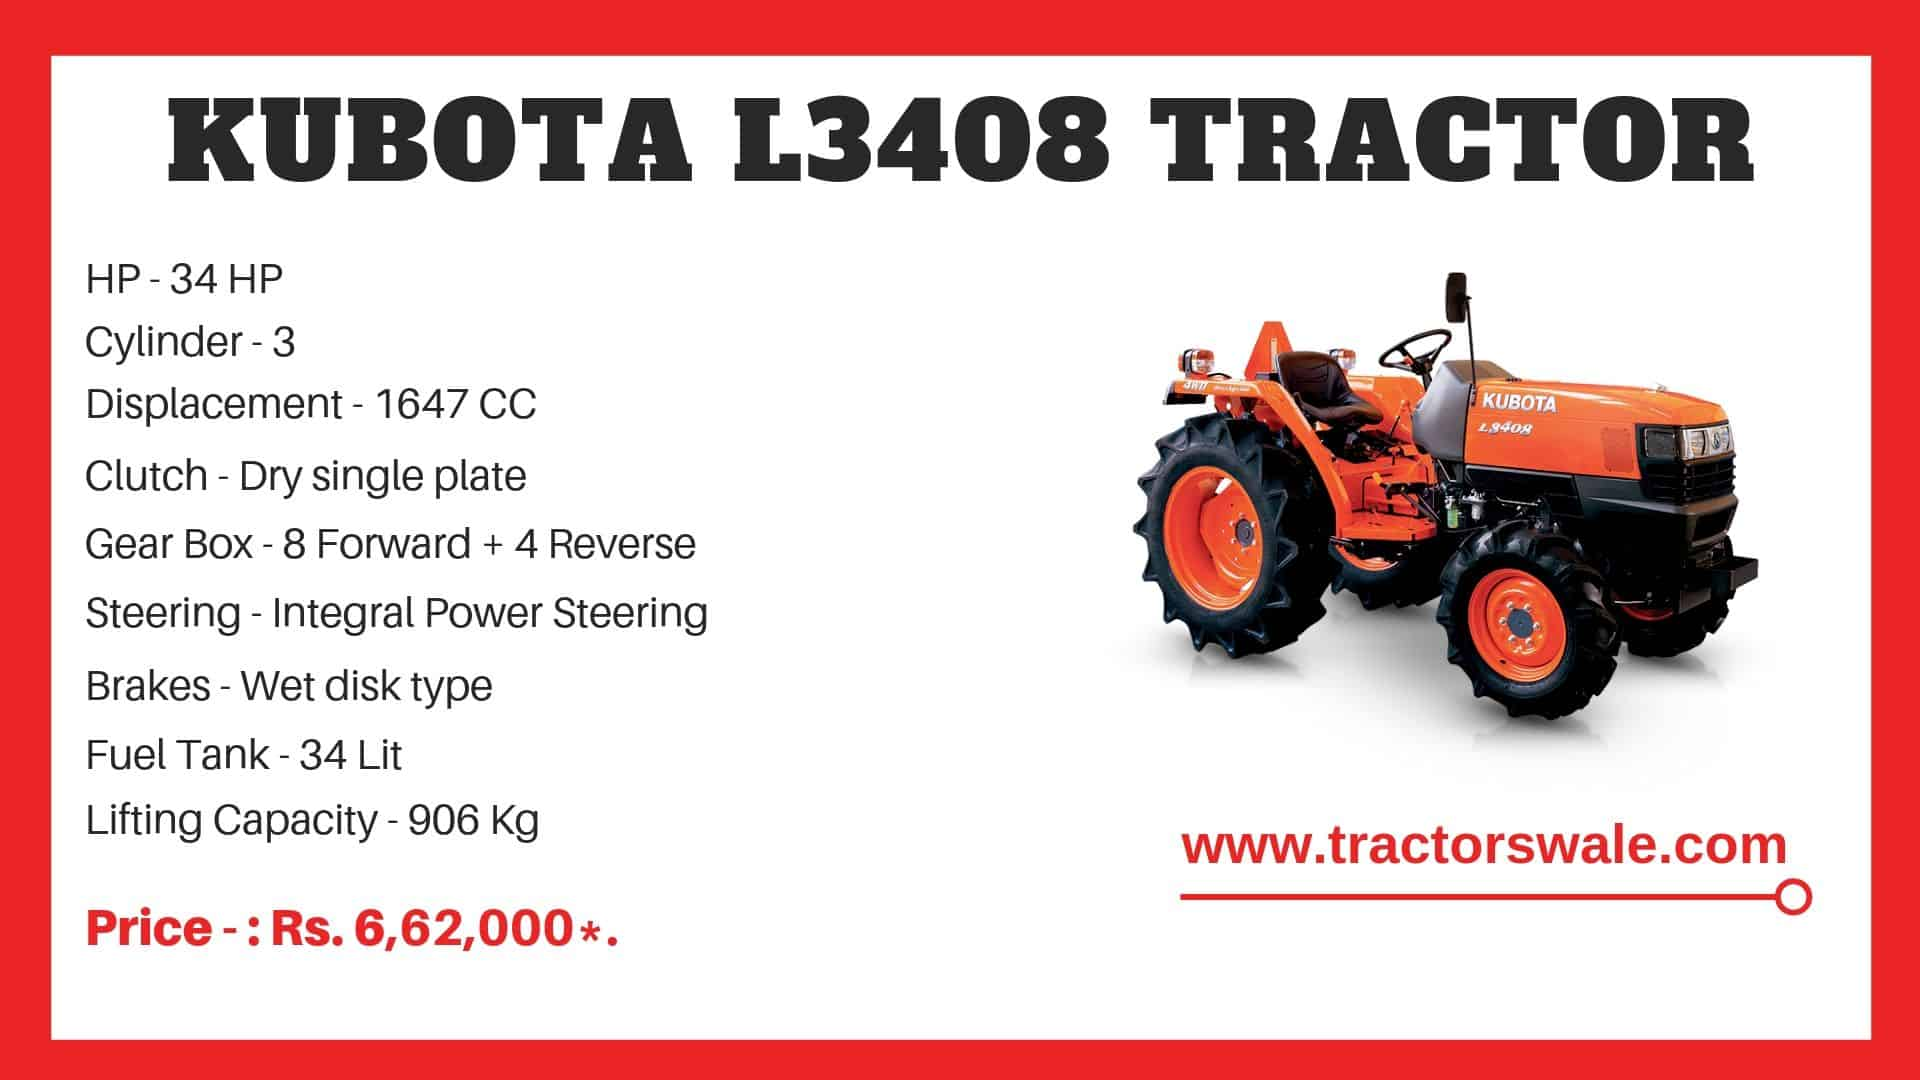 Kubota l3408 mini tractor specifications